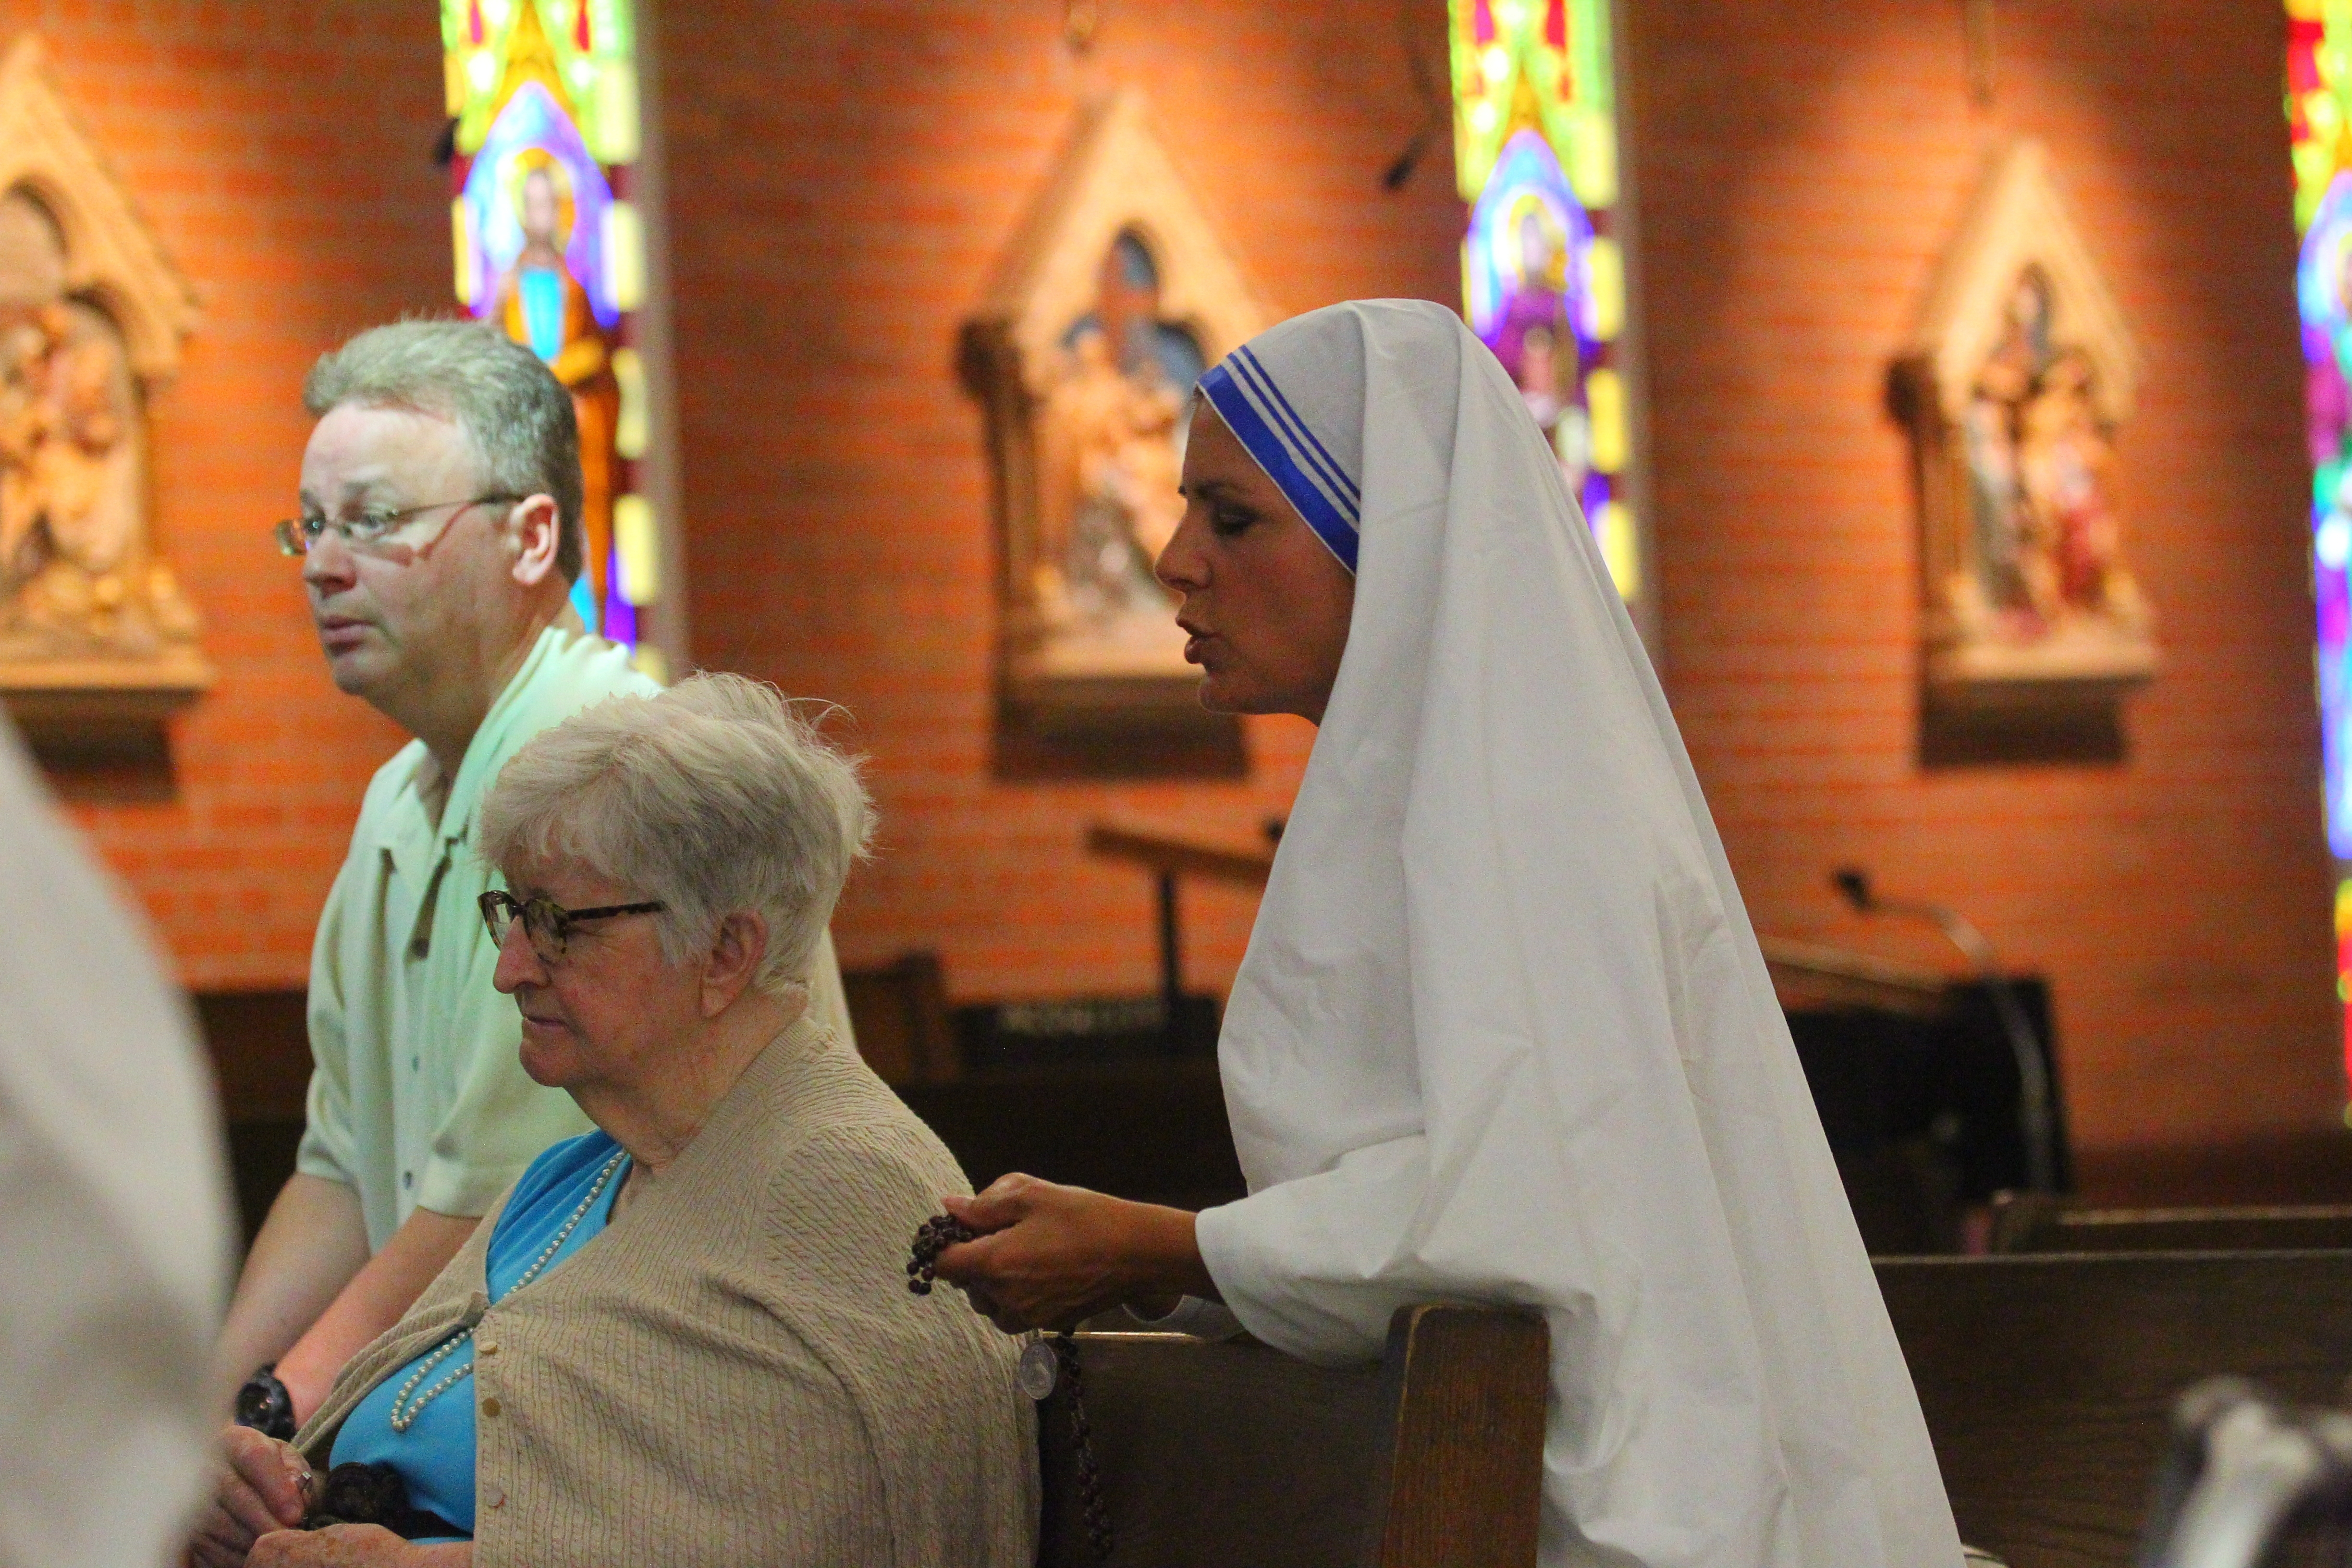 Dawn Iacono, right, a member of the staff at St. Leo the Great Church in Amherst, wears a replica of Saint Theresa of Calcutta's sari and veil as fellow Catholics pray in the church on Sunday. Below, a display in the church atrium honors the new saint.